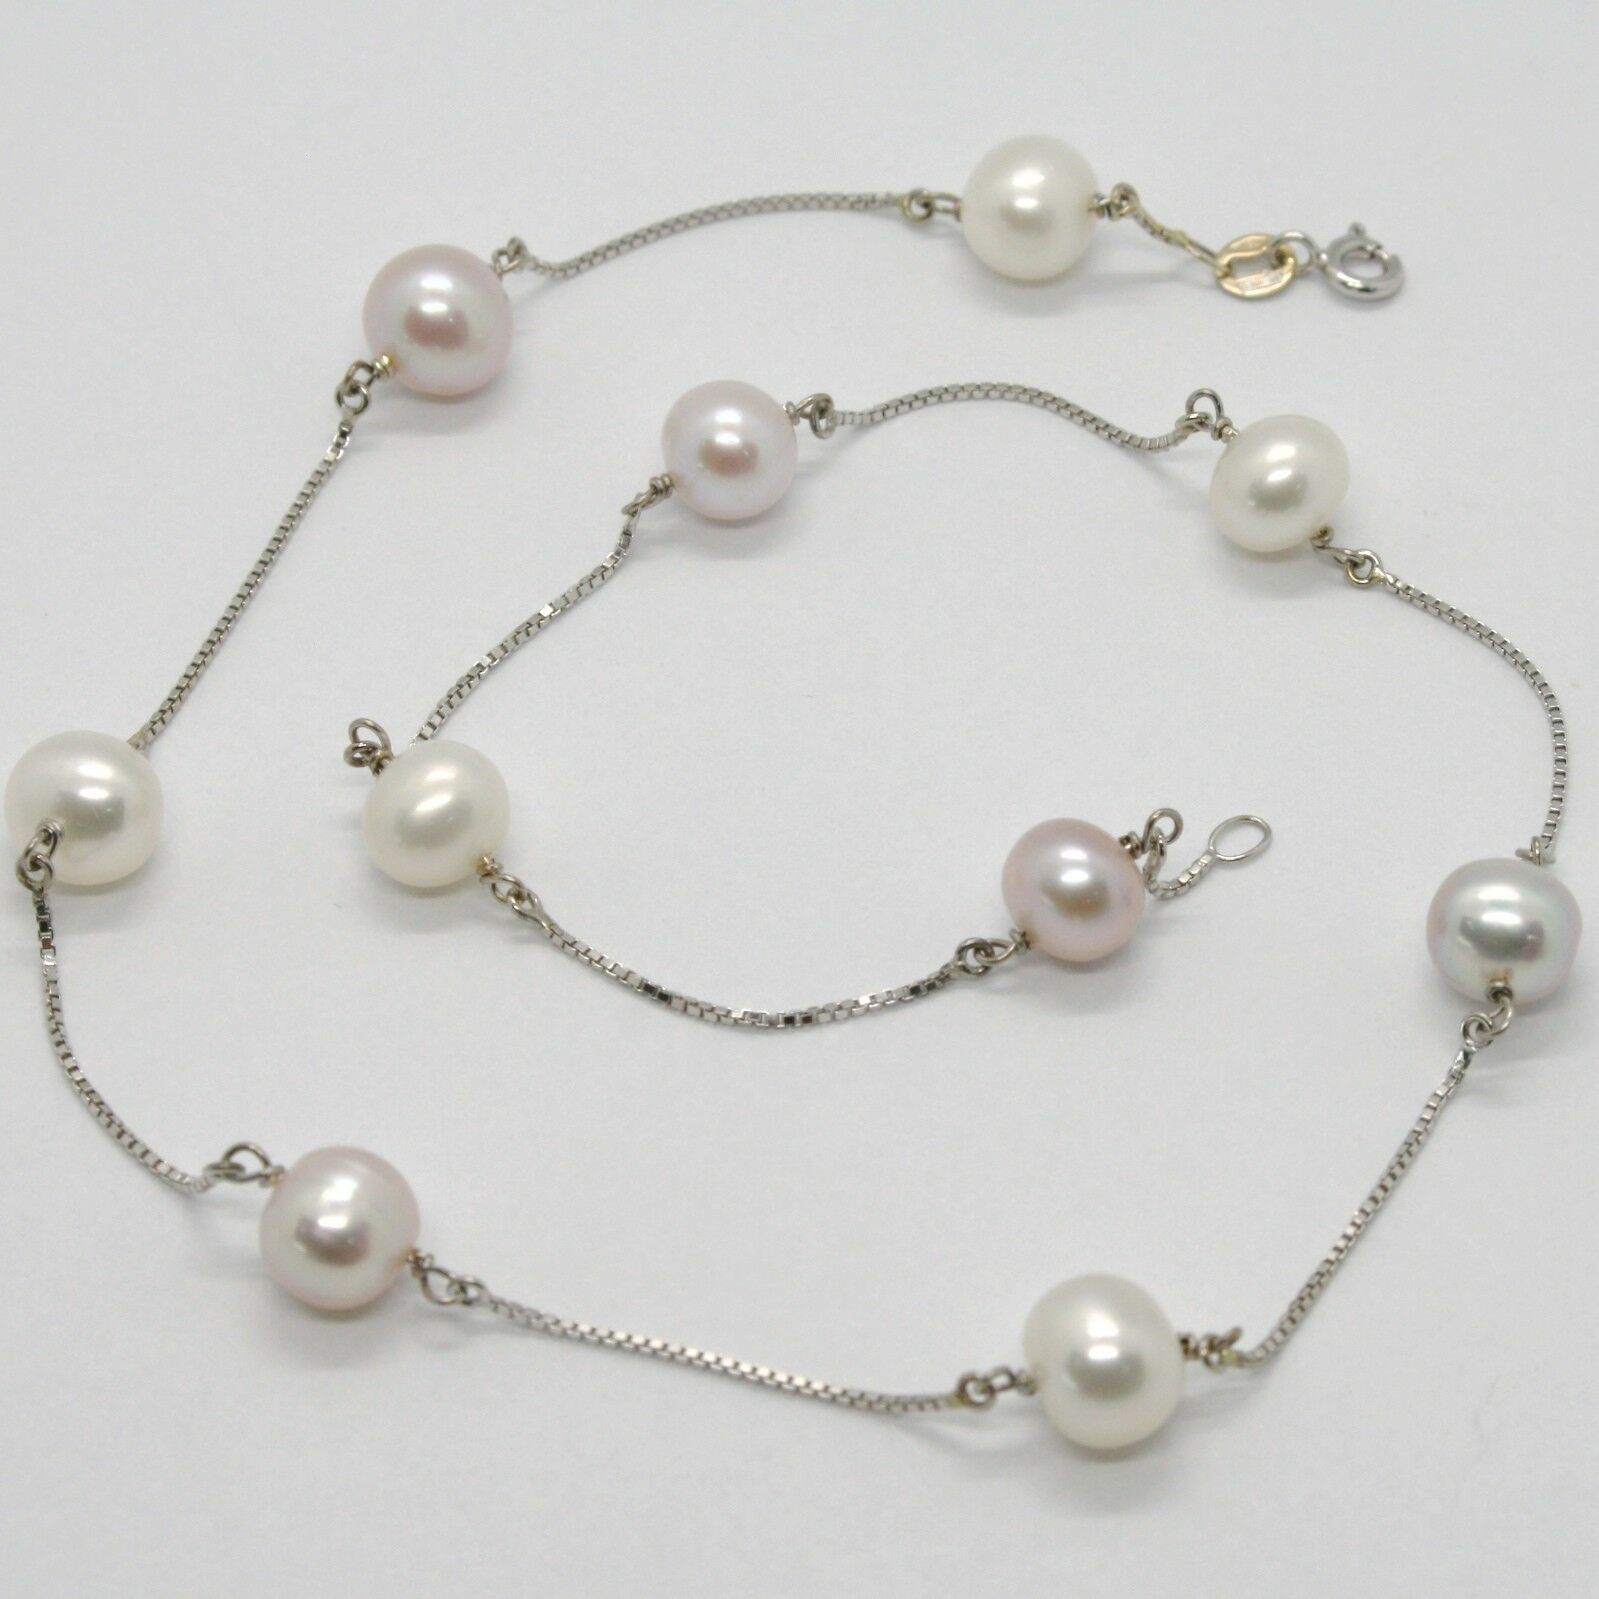 18K WHITE GOLD NECKLACE, VENETIAN CHAIN ALTERNATE PURPLE & WHITE PEARLS 8.5 MM